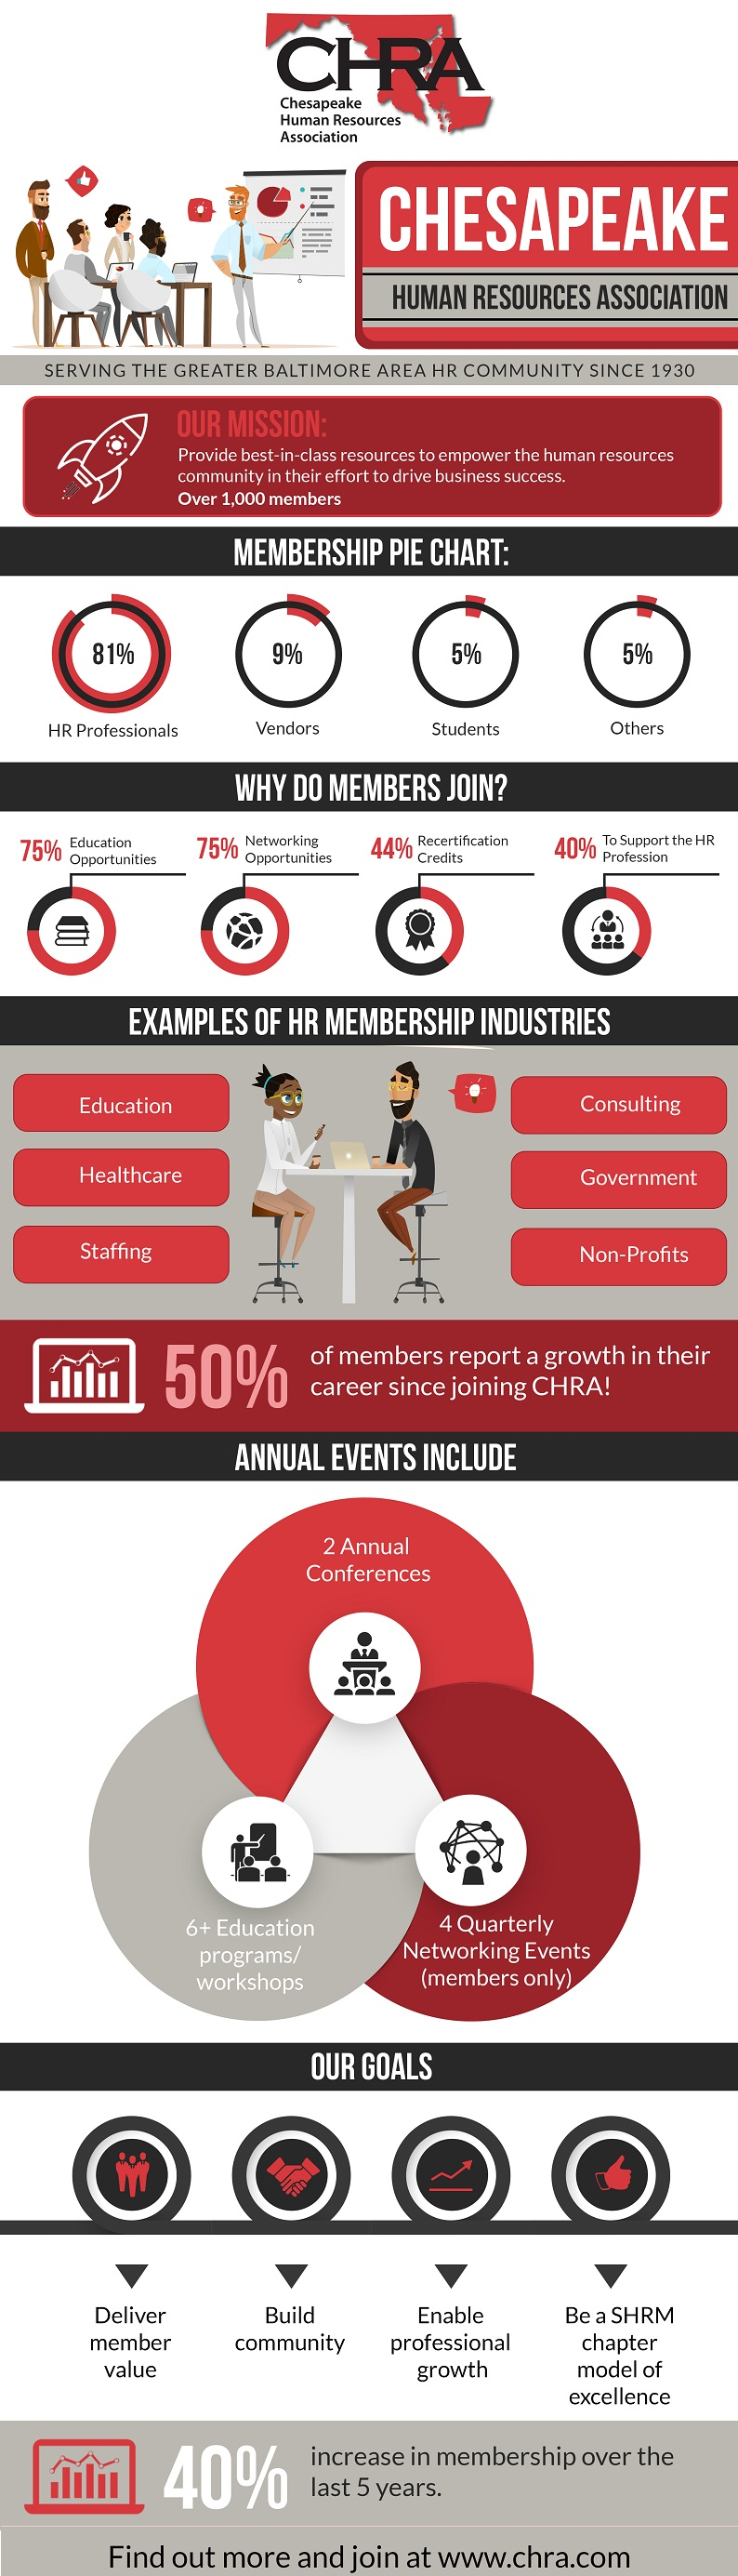 Newsletter chesapeake human resources association each year chra deploys a survey to its members to glean key insights into the value members experience from their membership from prior year surveys xflitez Gallery